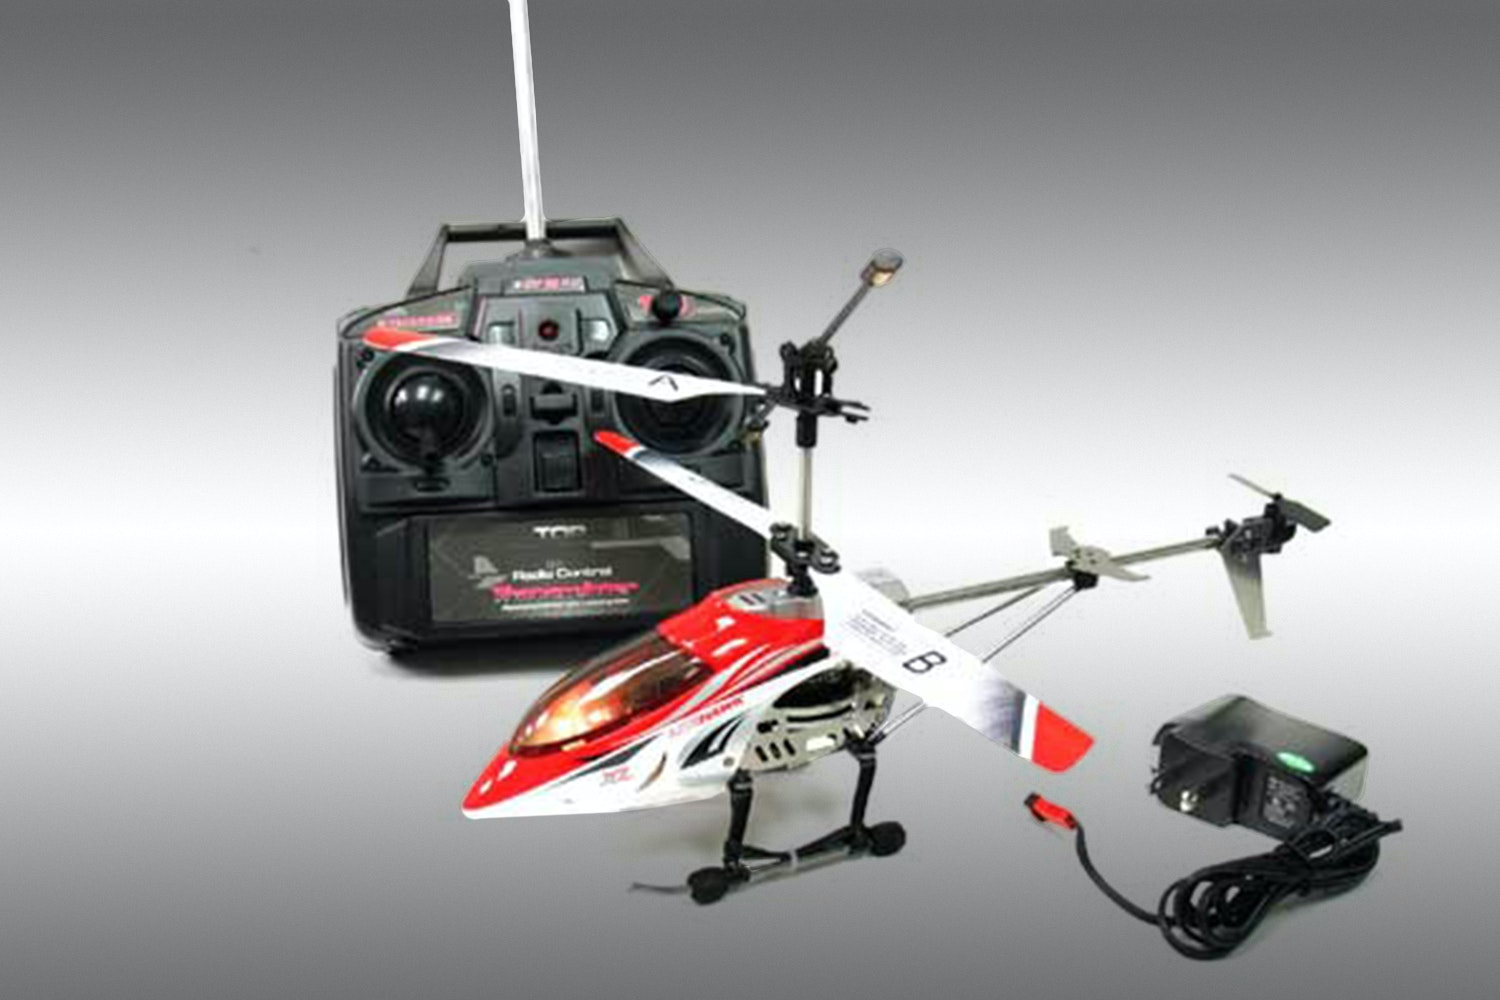 Litehawk XL CX Helicopter 2.4ghz RTF